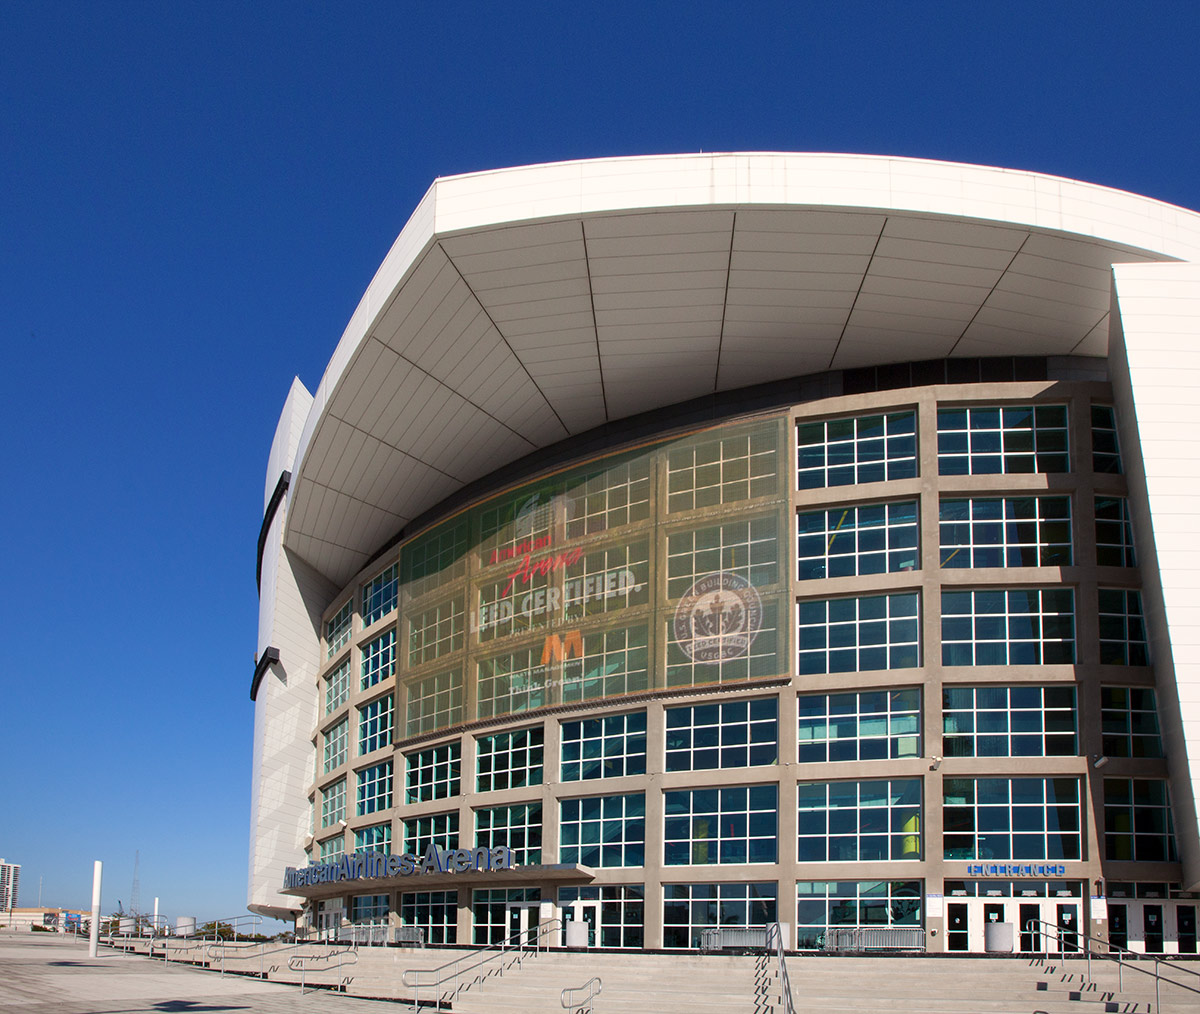 American Airlines Arena Day View